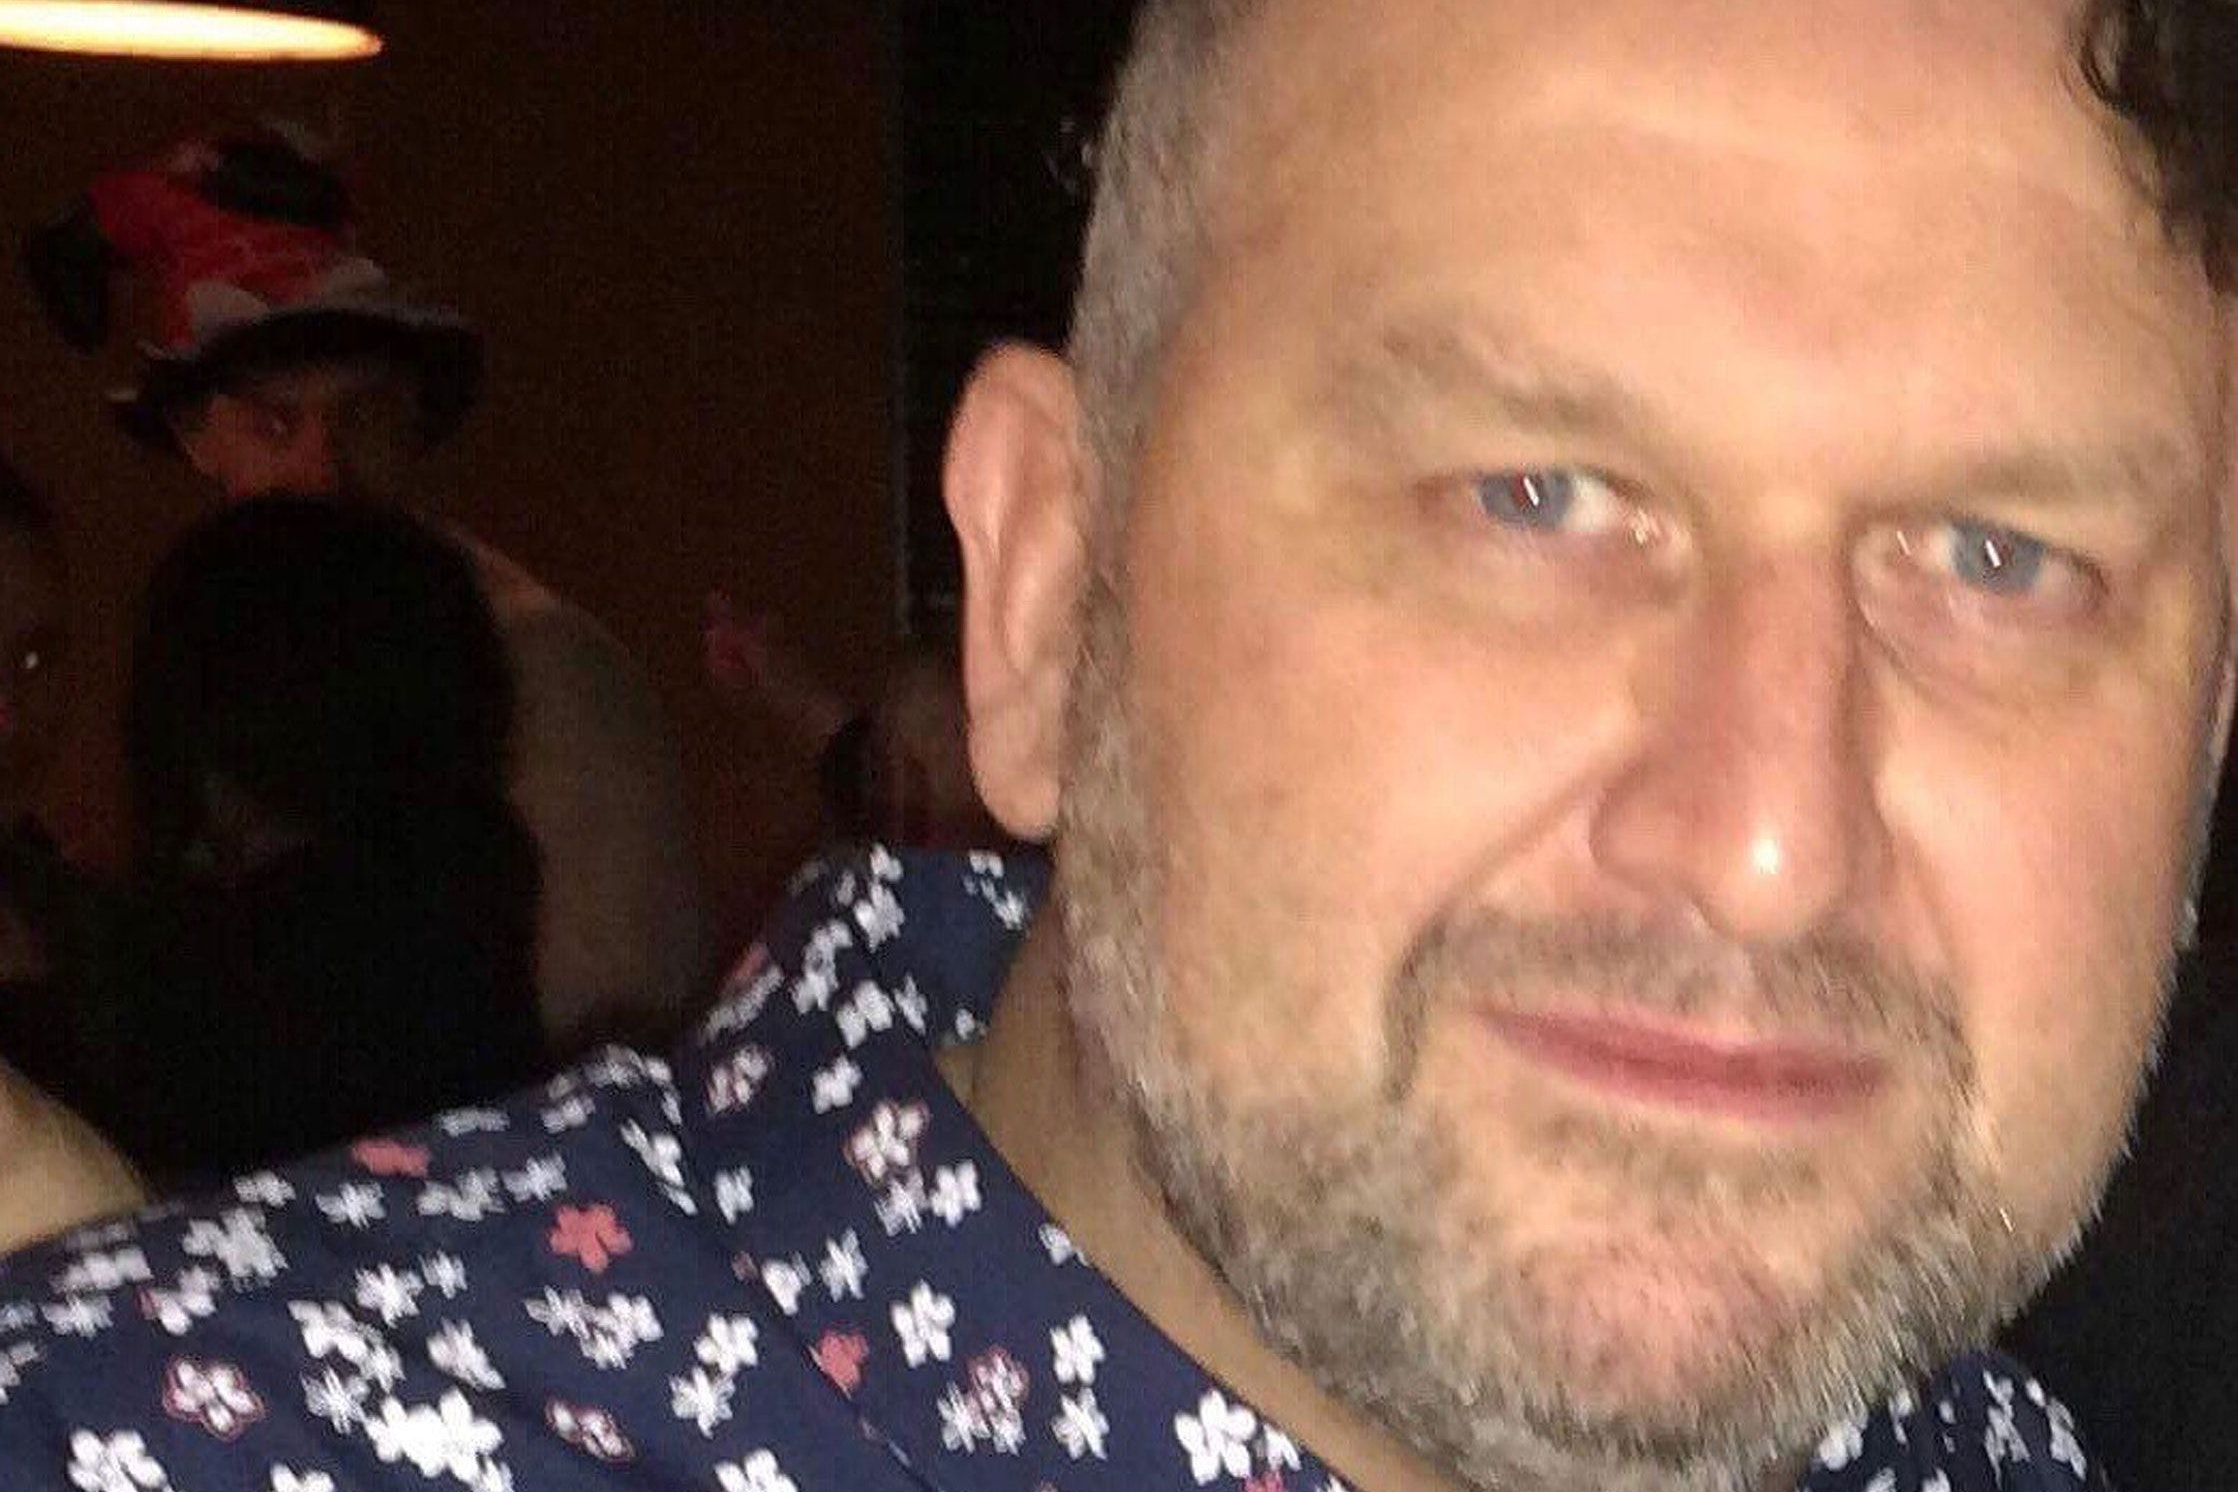 Family of late Welsh minister Carl Sargeant win legal bid to challenge inquiry